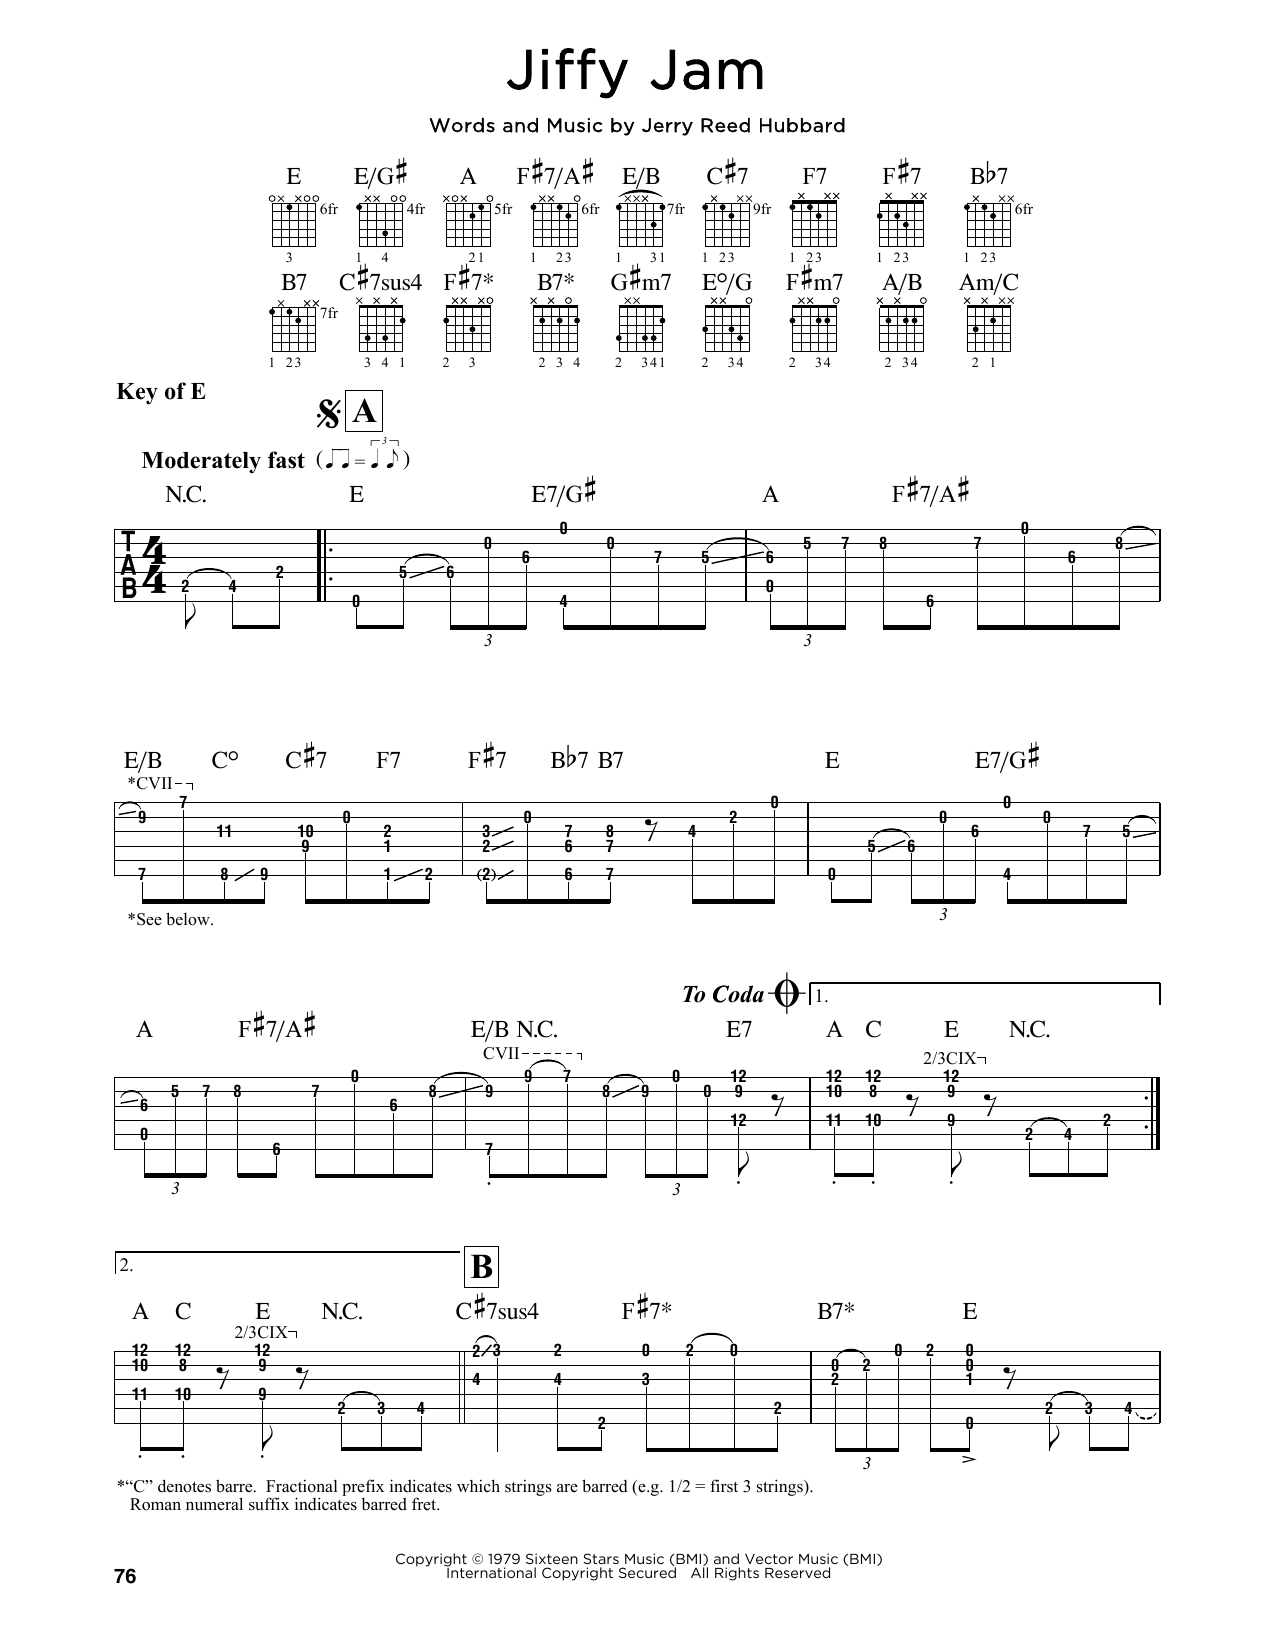 Jiffy Jam Sheet Music